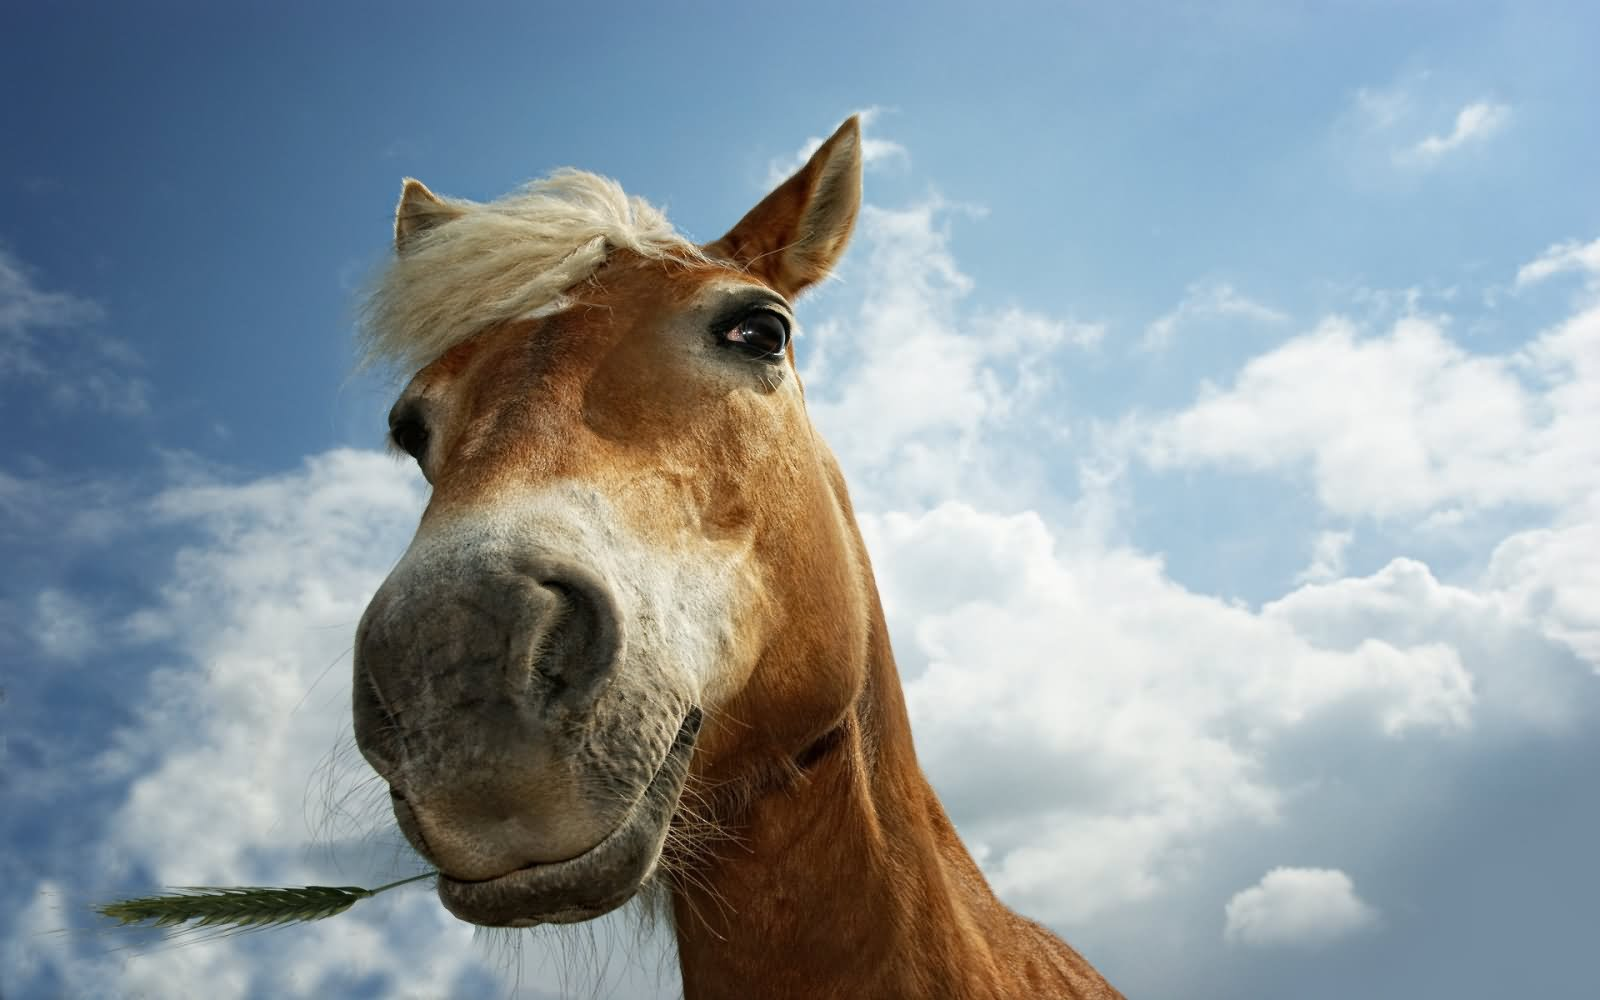 50 Very Funny Horse Face Pictures And Images